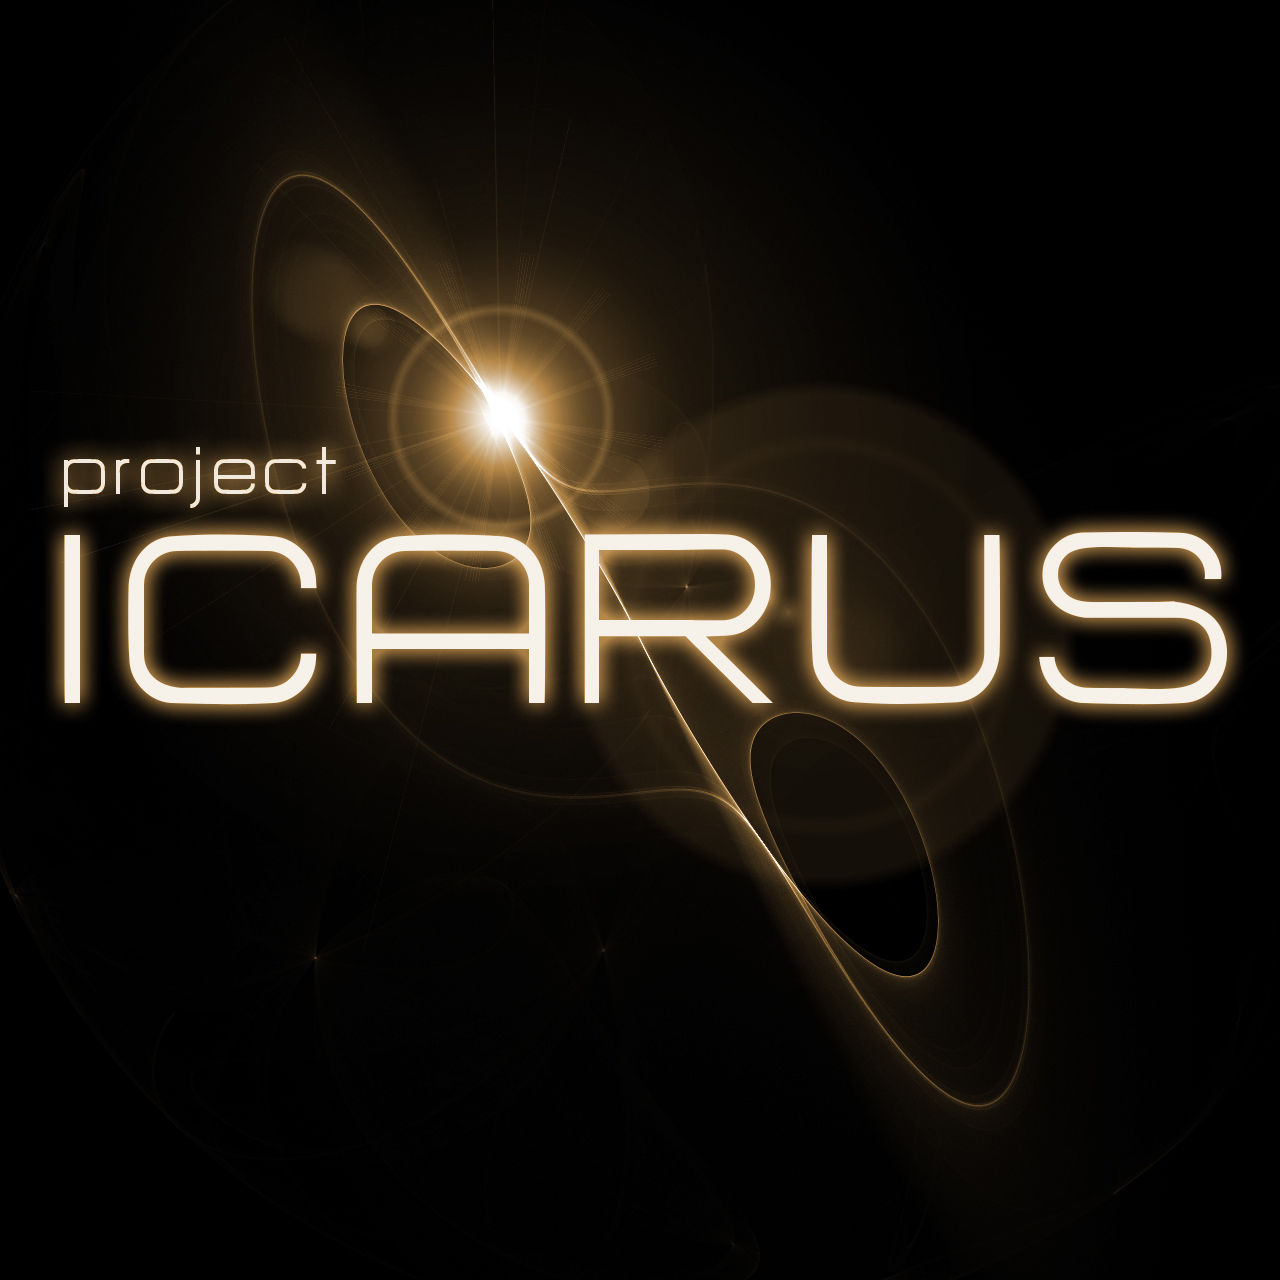 icarus project Evan ez kushin is raising funds for the icarus project: year 3 on kickstarter icarus is a gigantic mobile art car spaceship we need your help with upgrades as we prepare for its third mission to burning man.